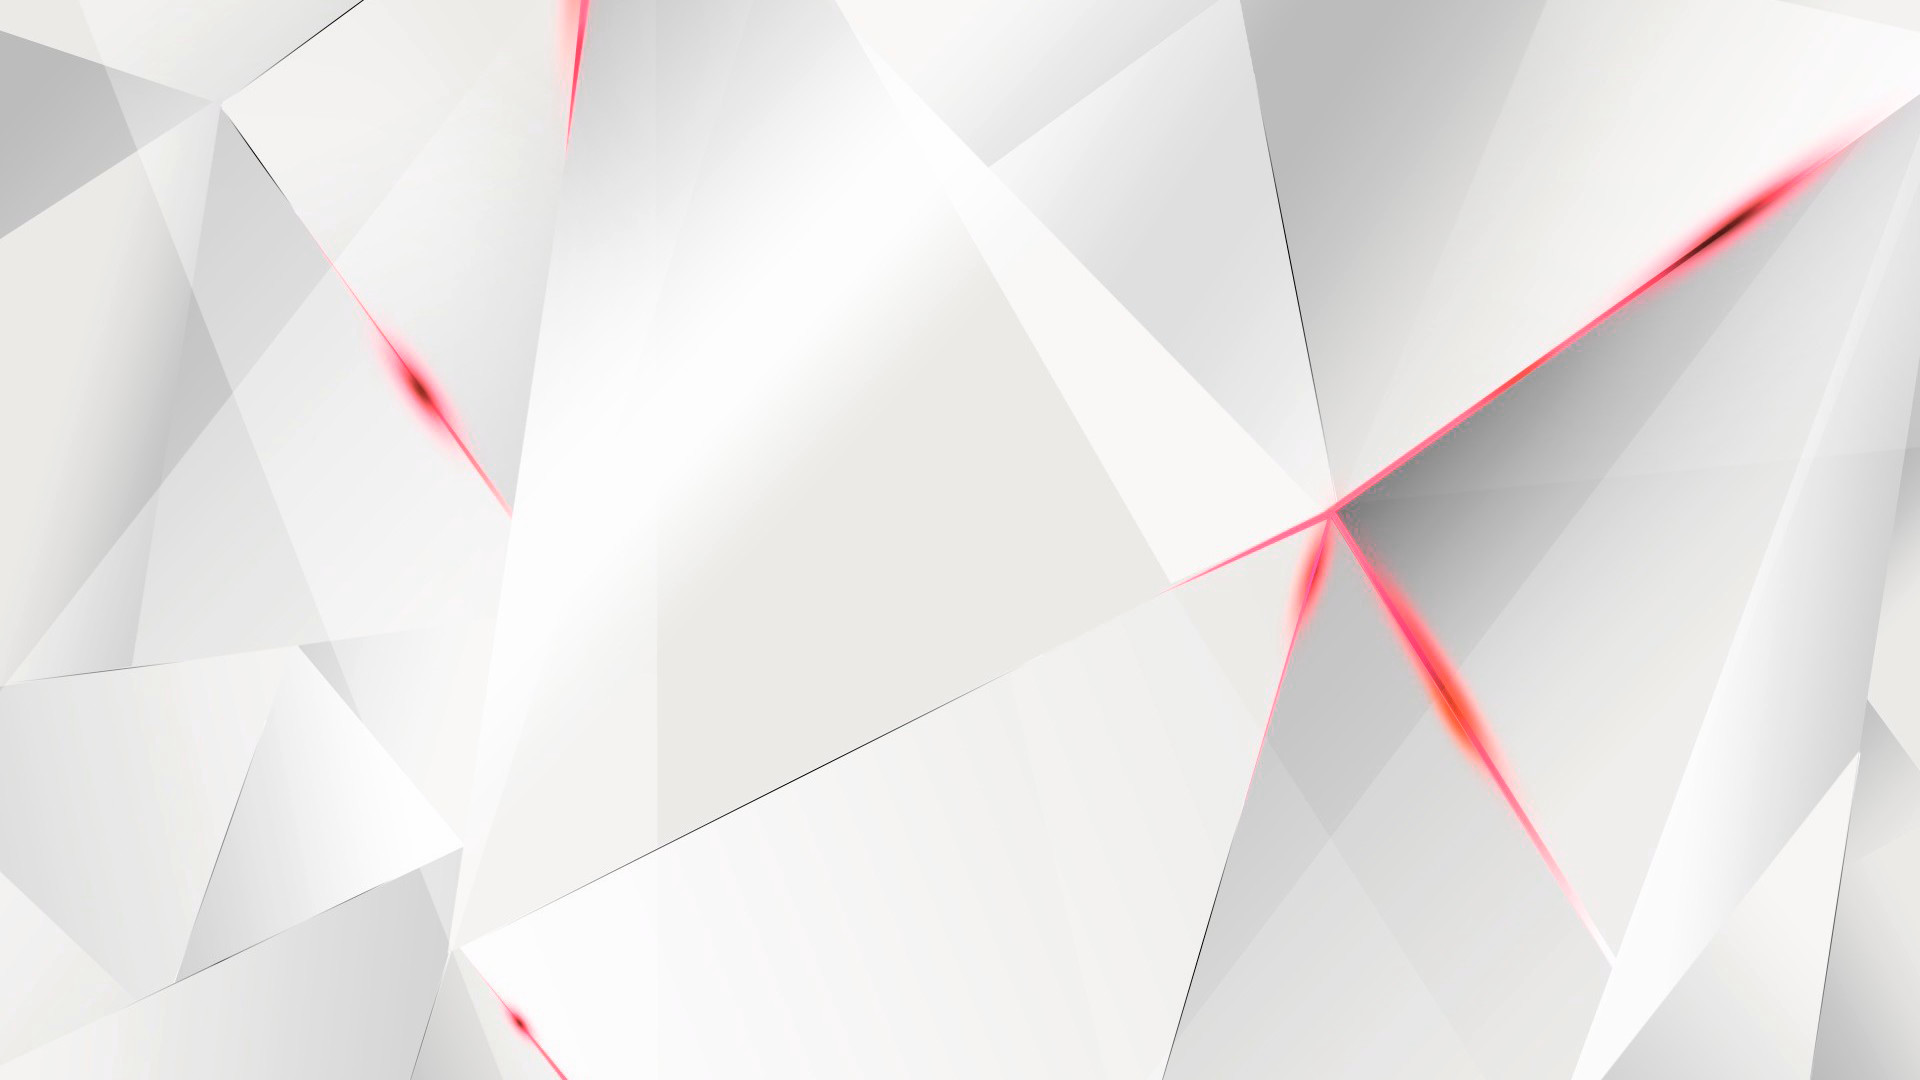 … Wallpapers – Red Abstract Polygons (White BG) by kaminohunter